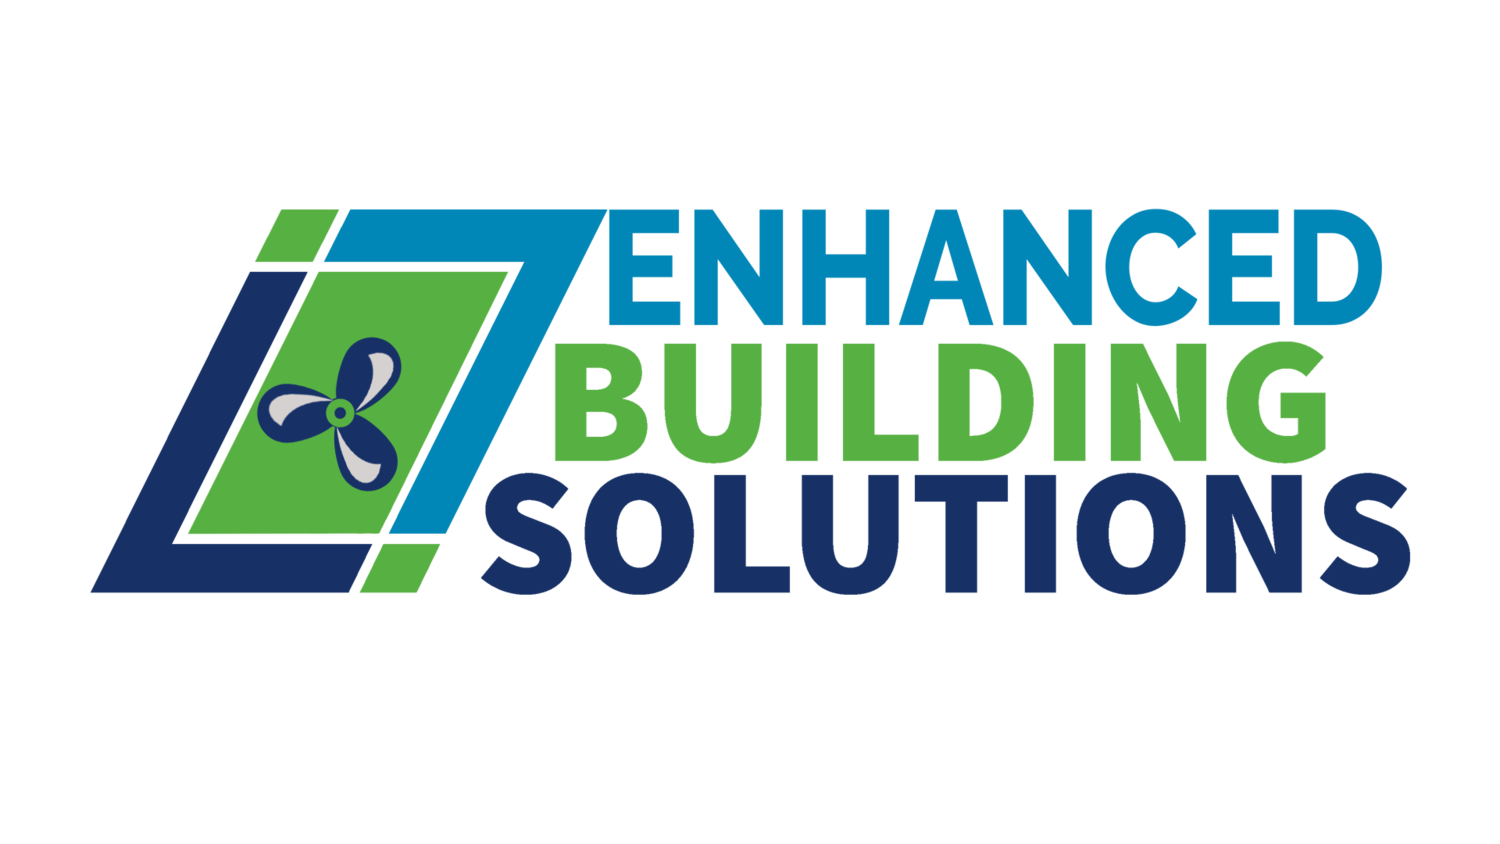 ENHANCED BUILDING SOLUTIONS